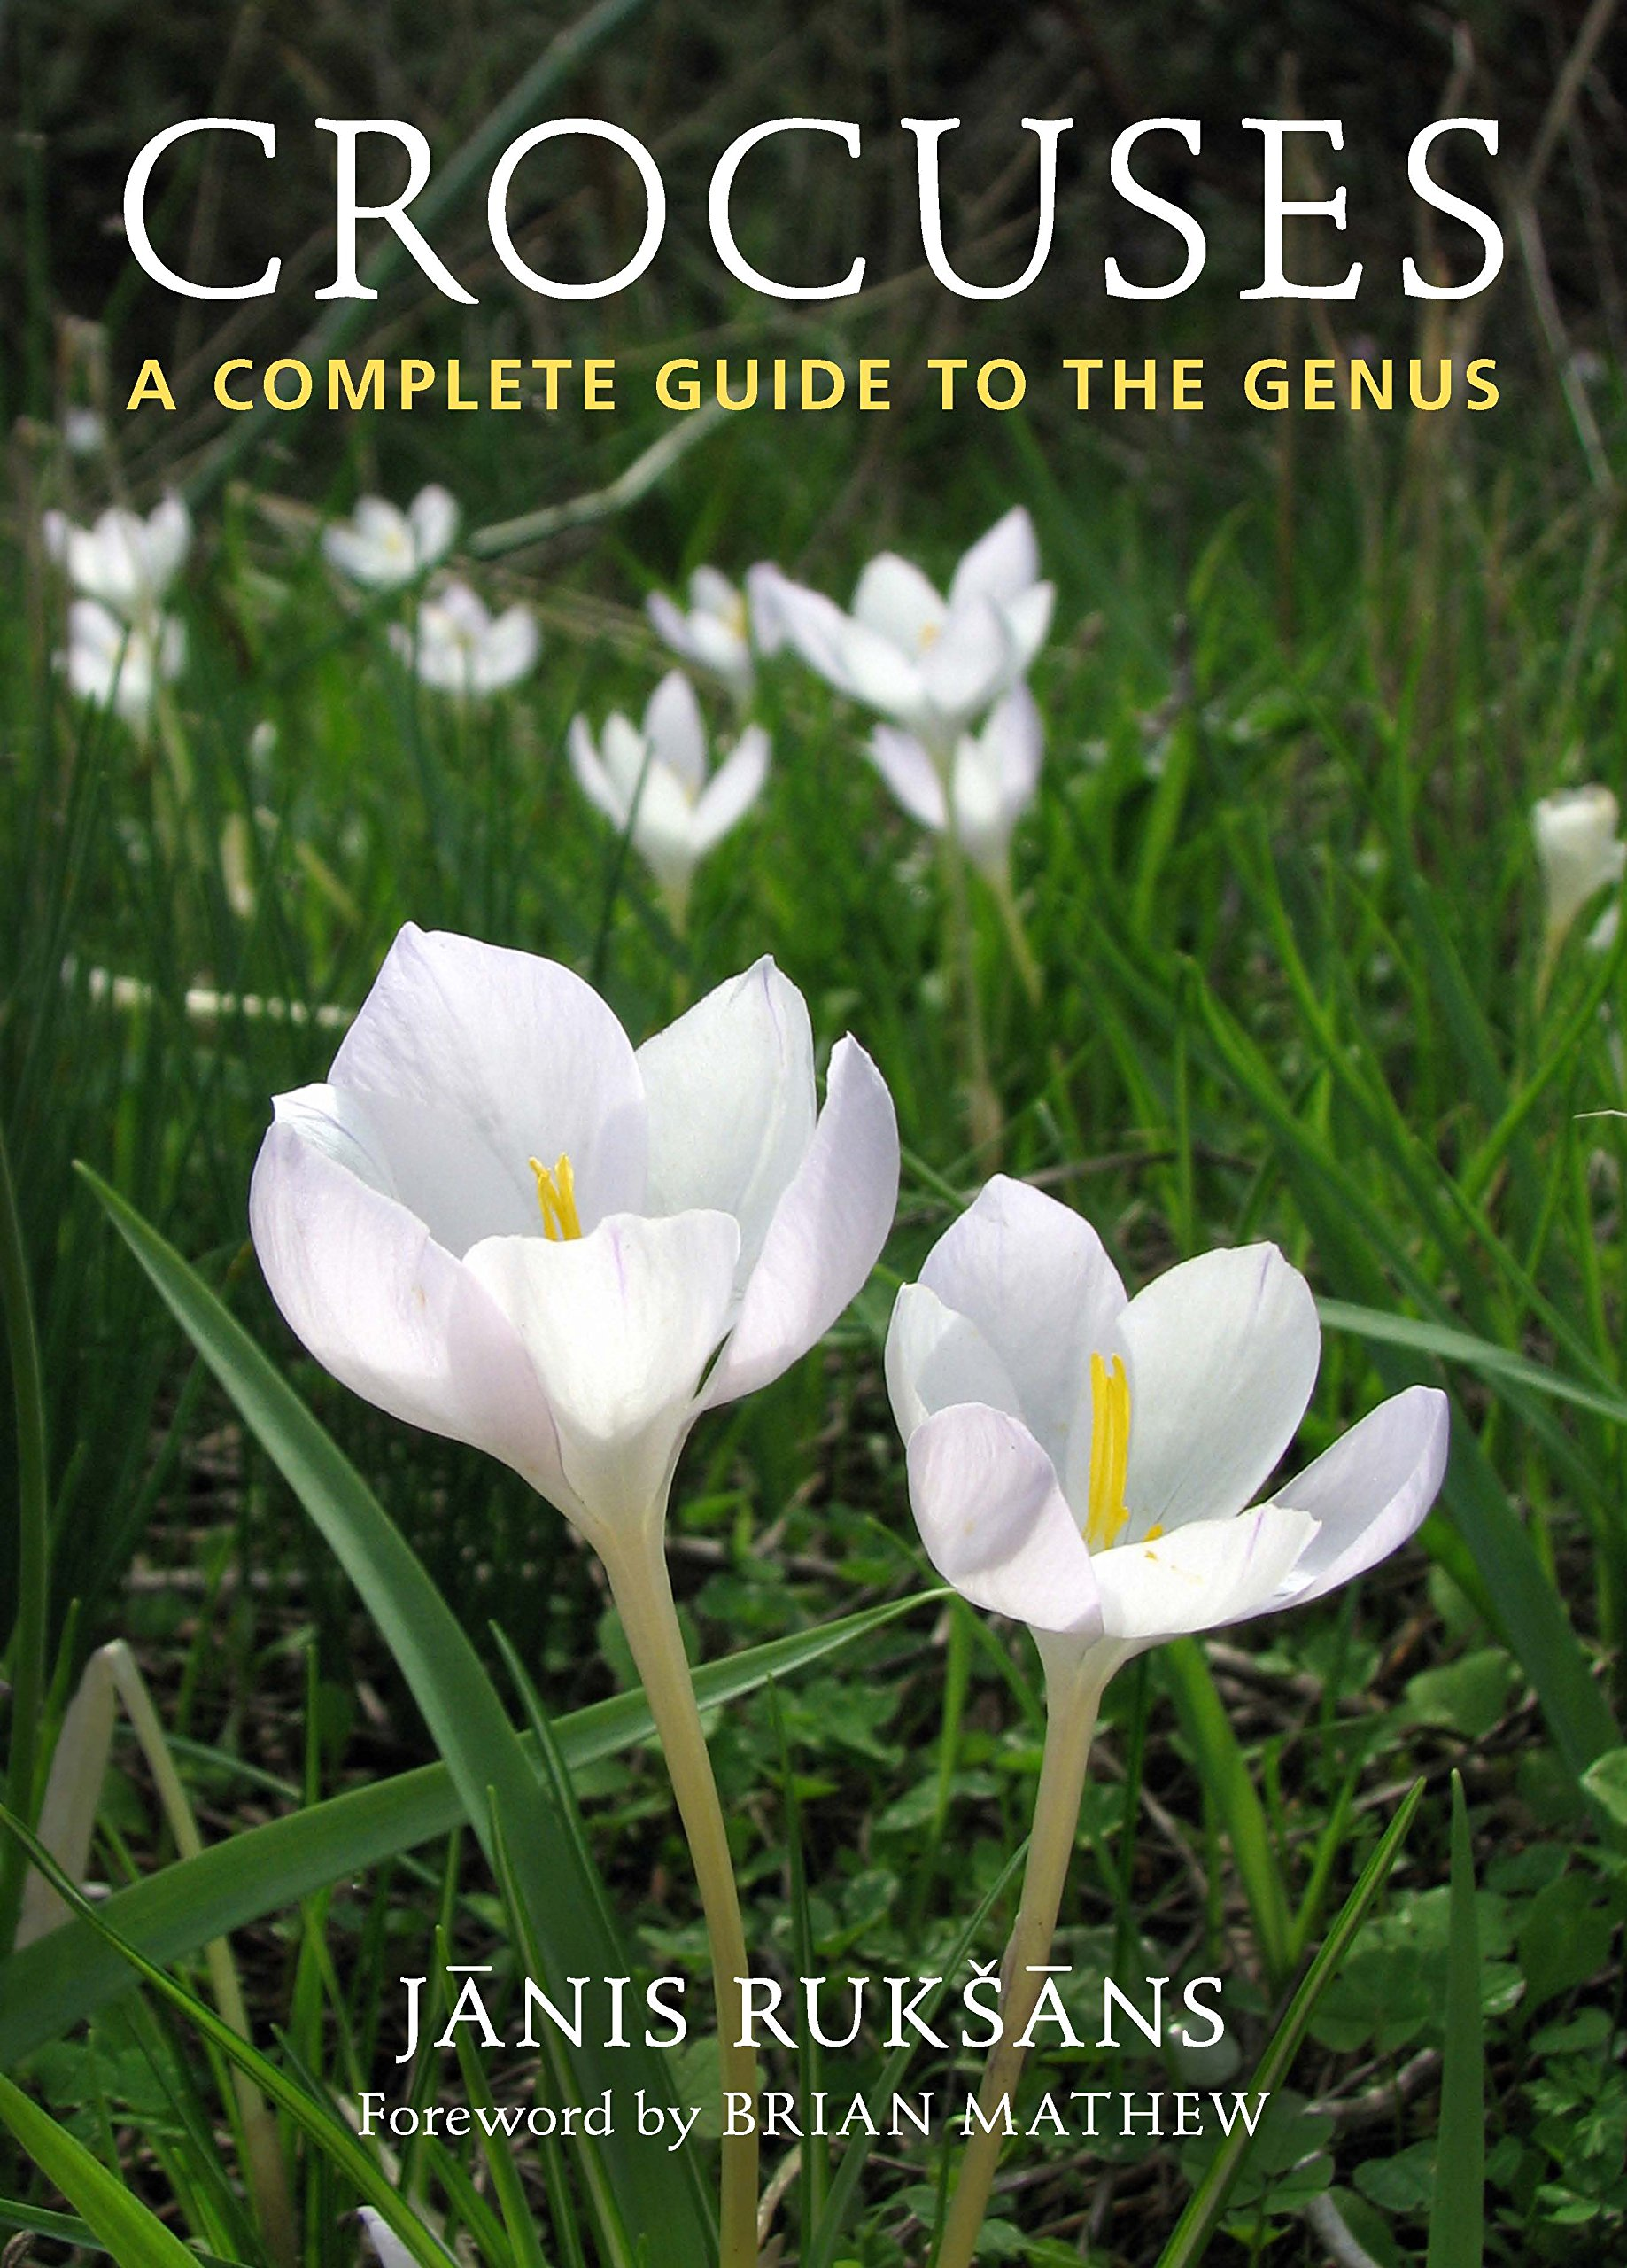 Crocuses a Compete Guide to the Genus: A Complete Guide to the Genus